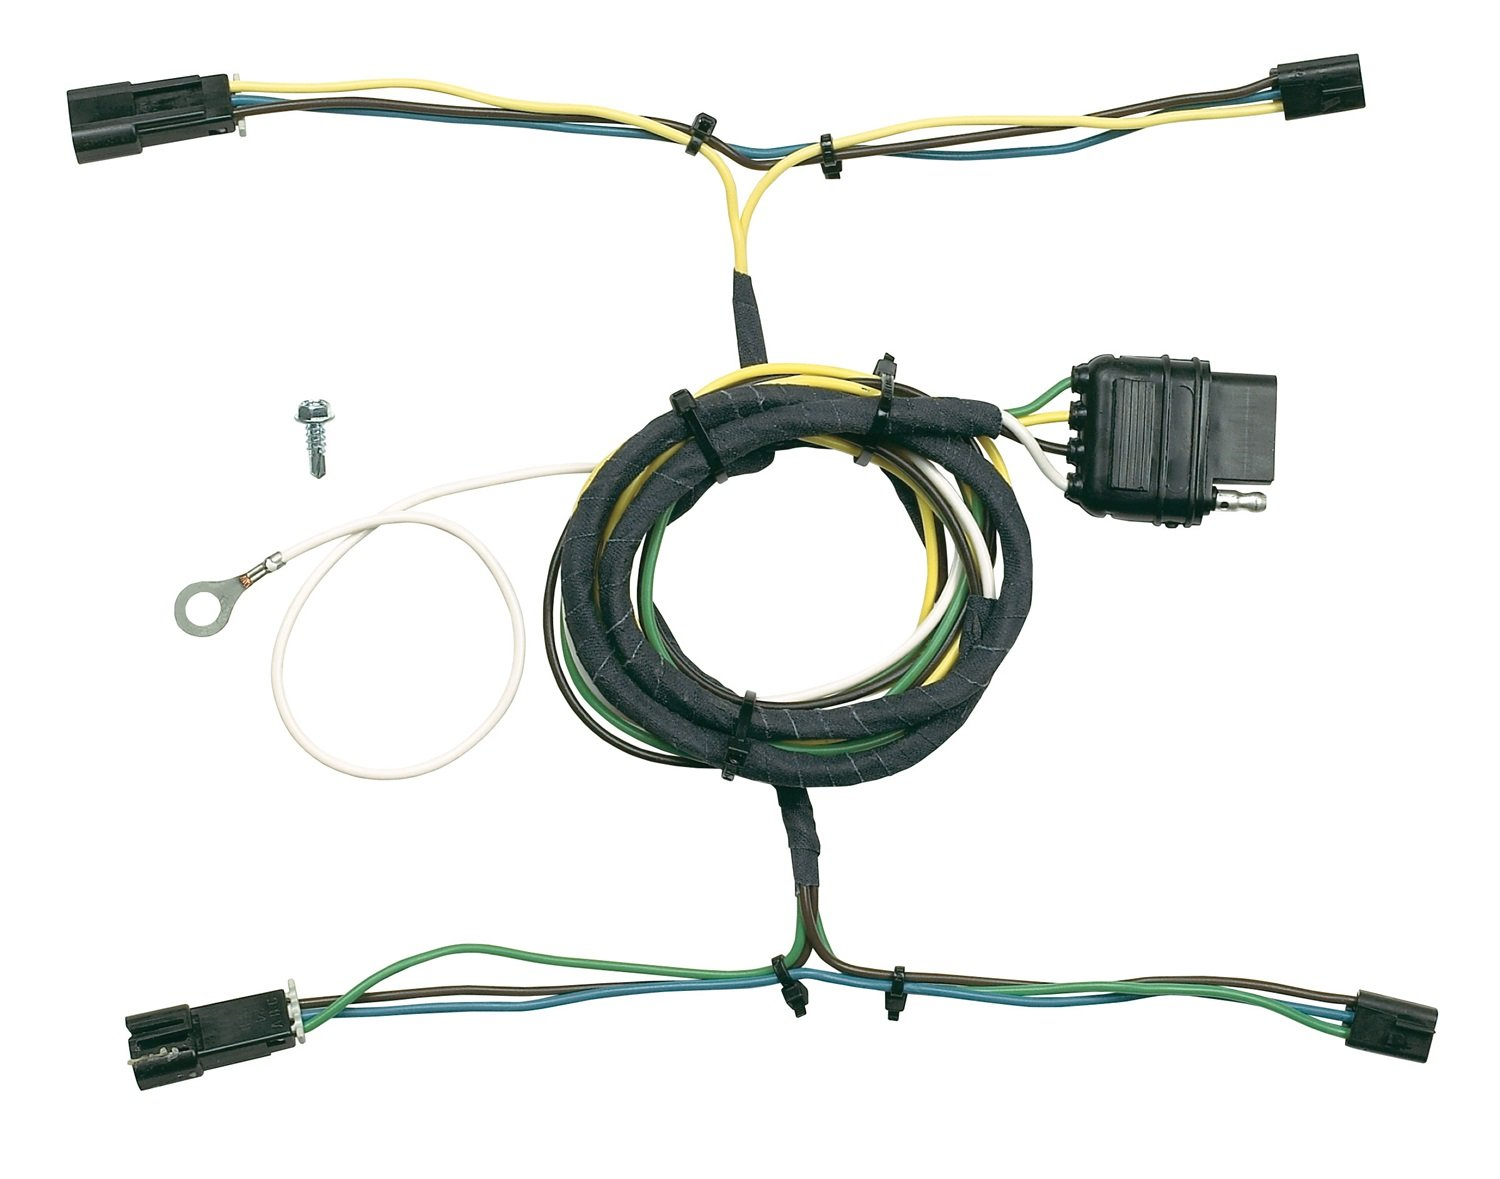 61JhsIfgkfL._SL1500_ amazon com hopkins 41305 plug in simple vehicle wiring kit  at panicattacktreatment.co